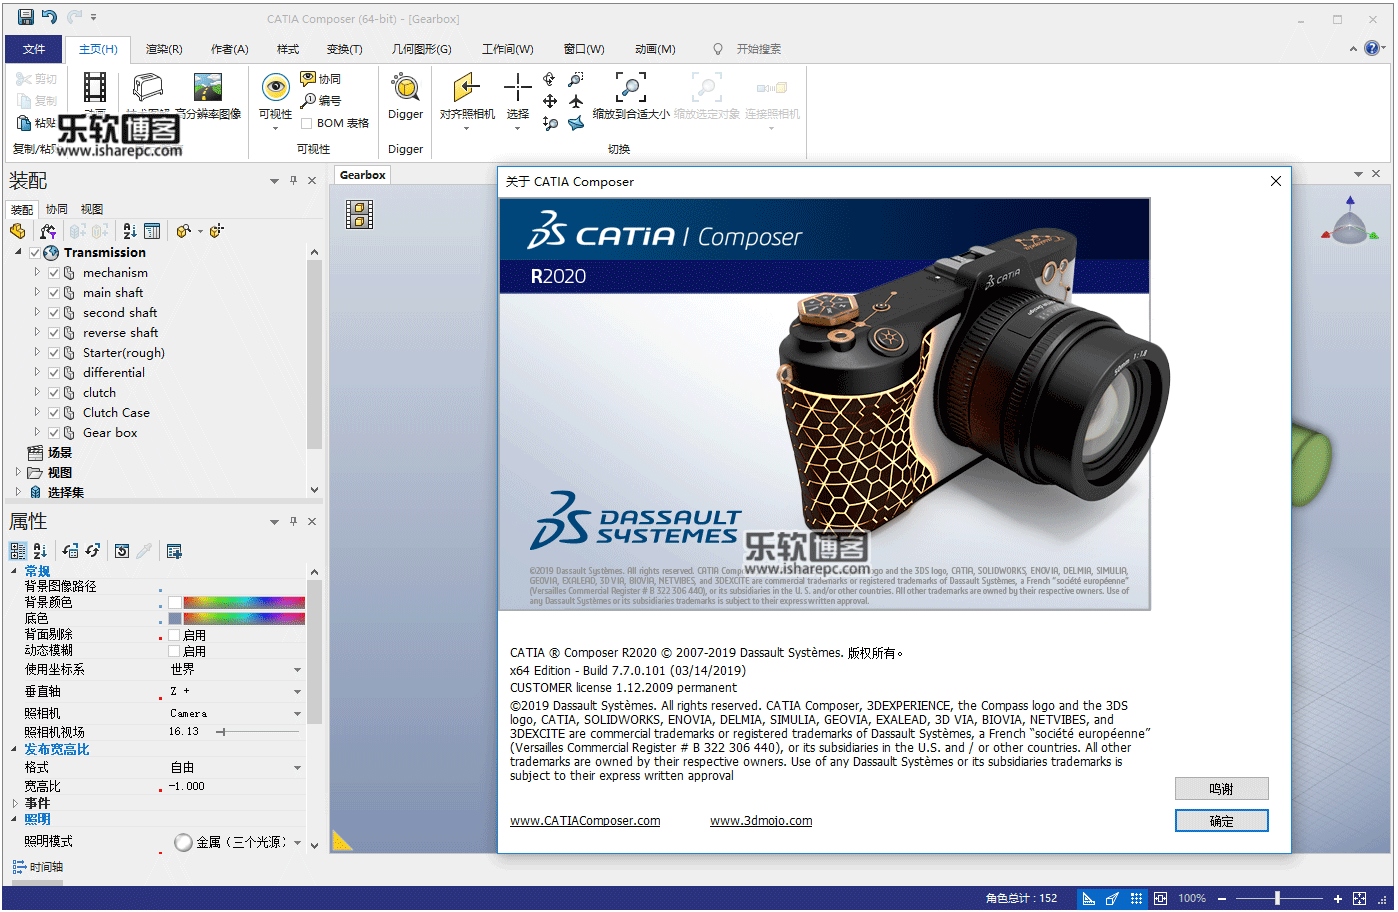 DS CATIA Composer R2020破解版